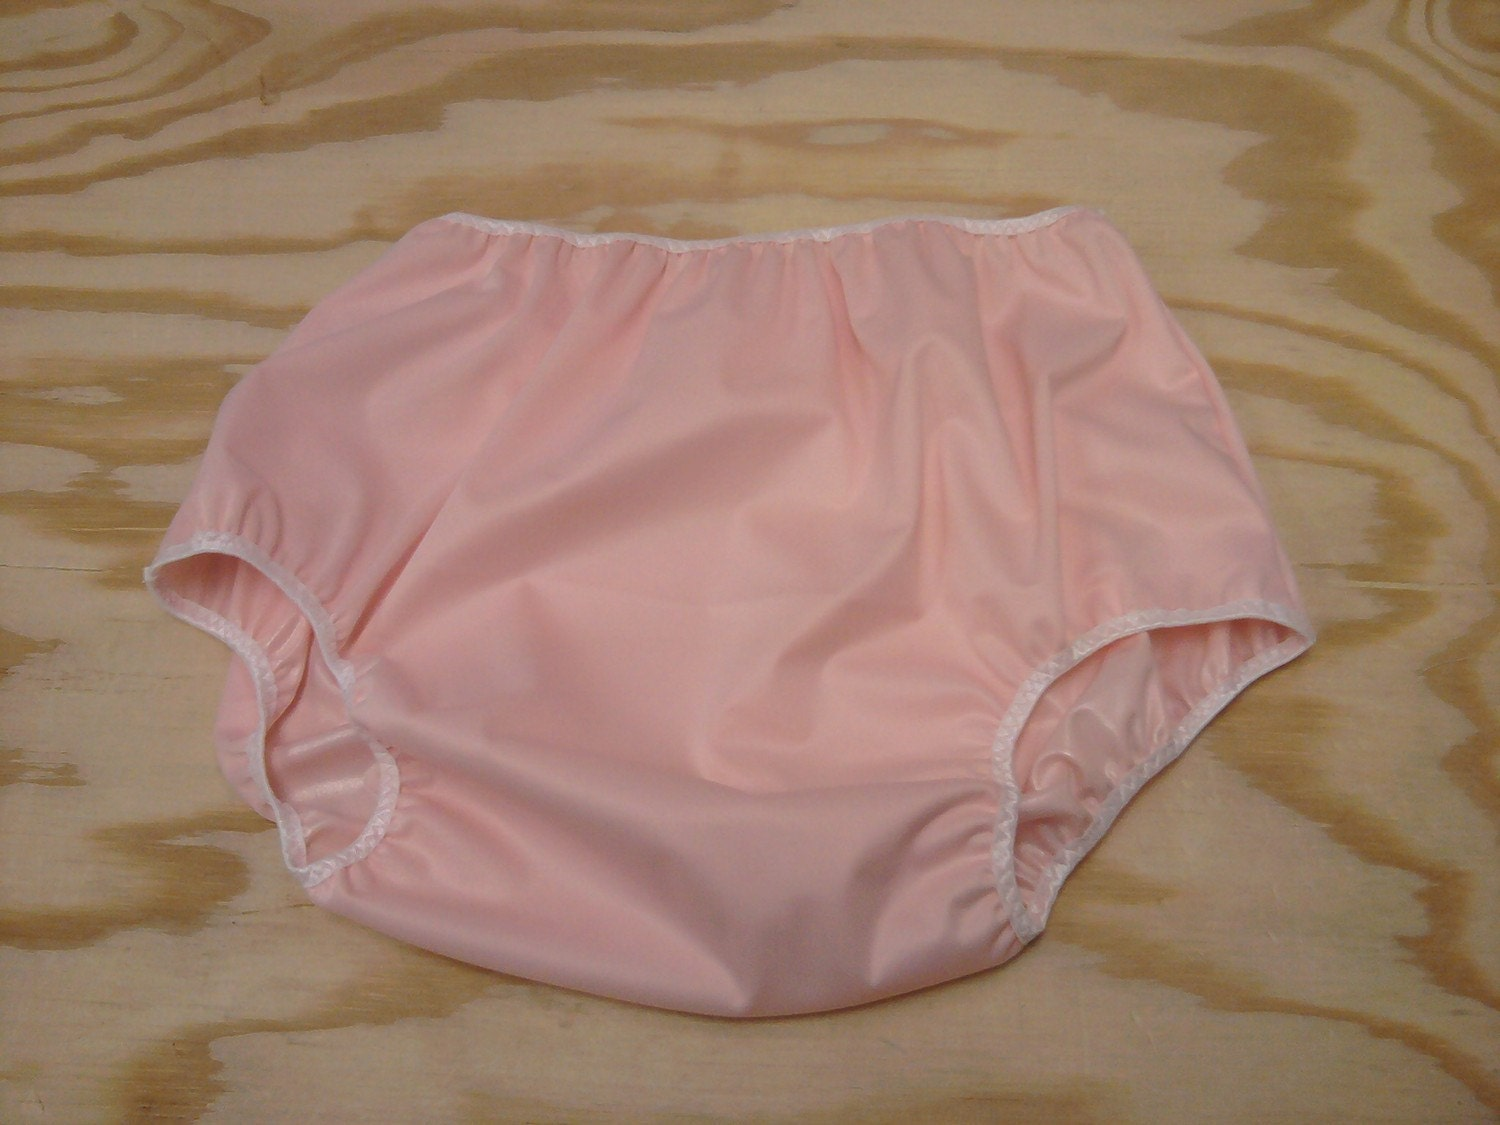 Adult Diaper Cover Pink Size 28 To 38 Inches Clearance